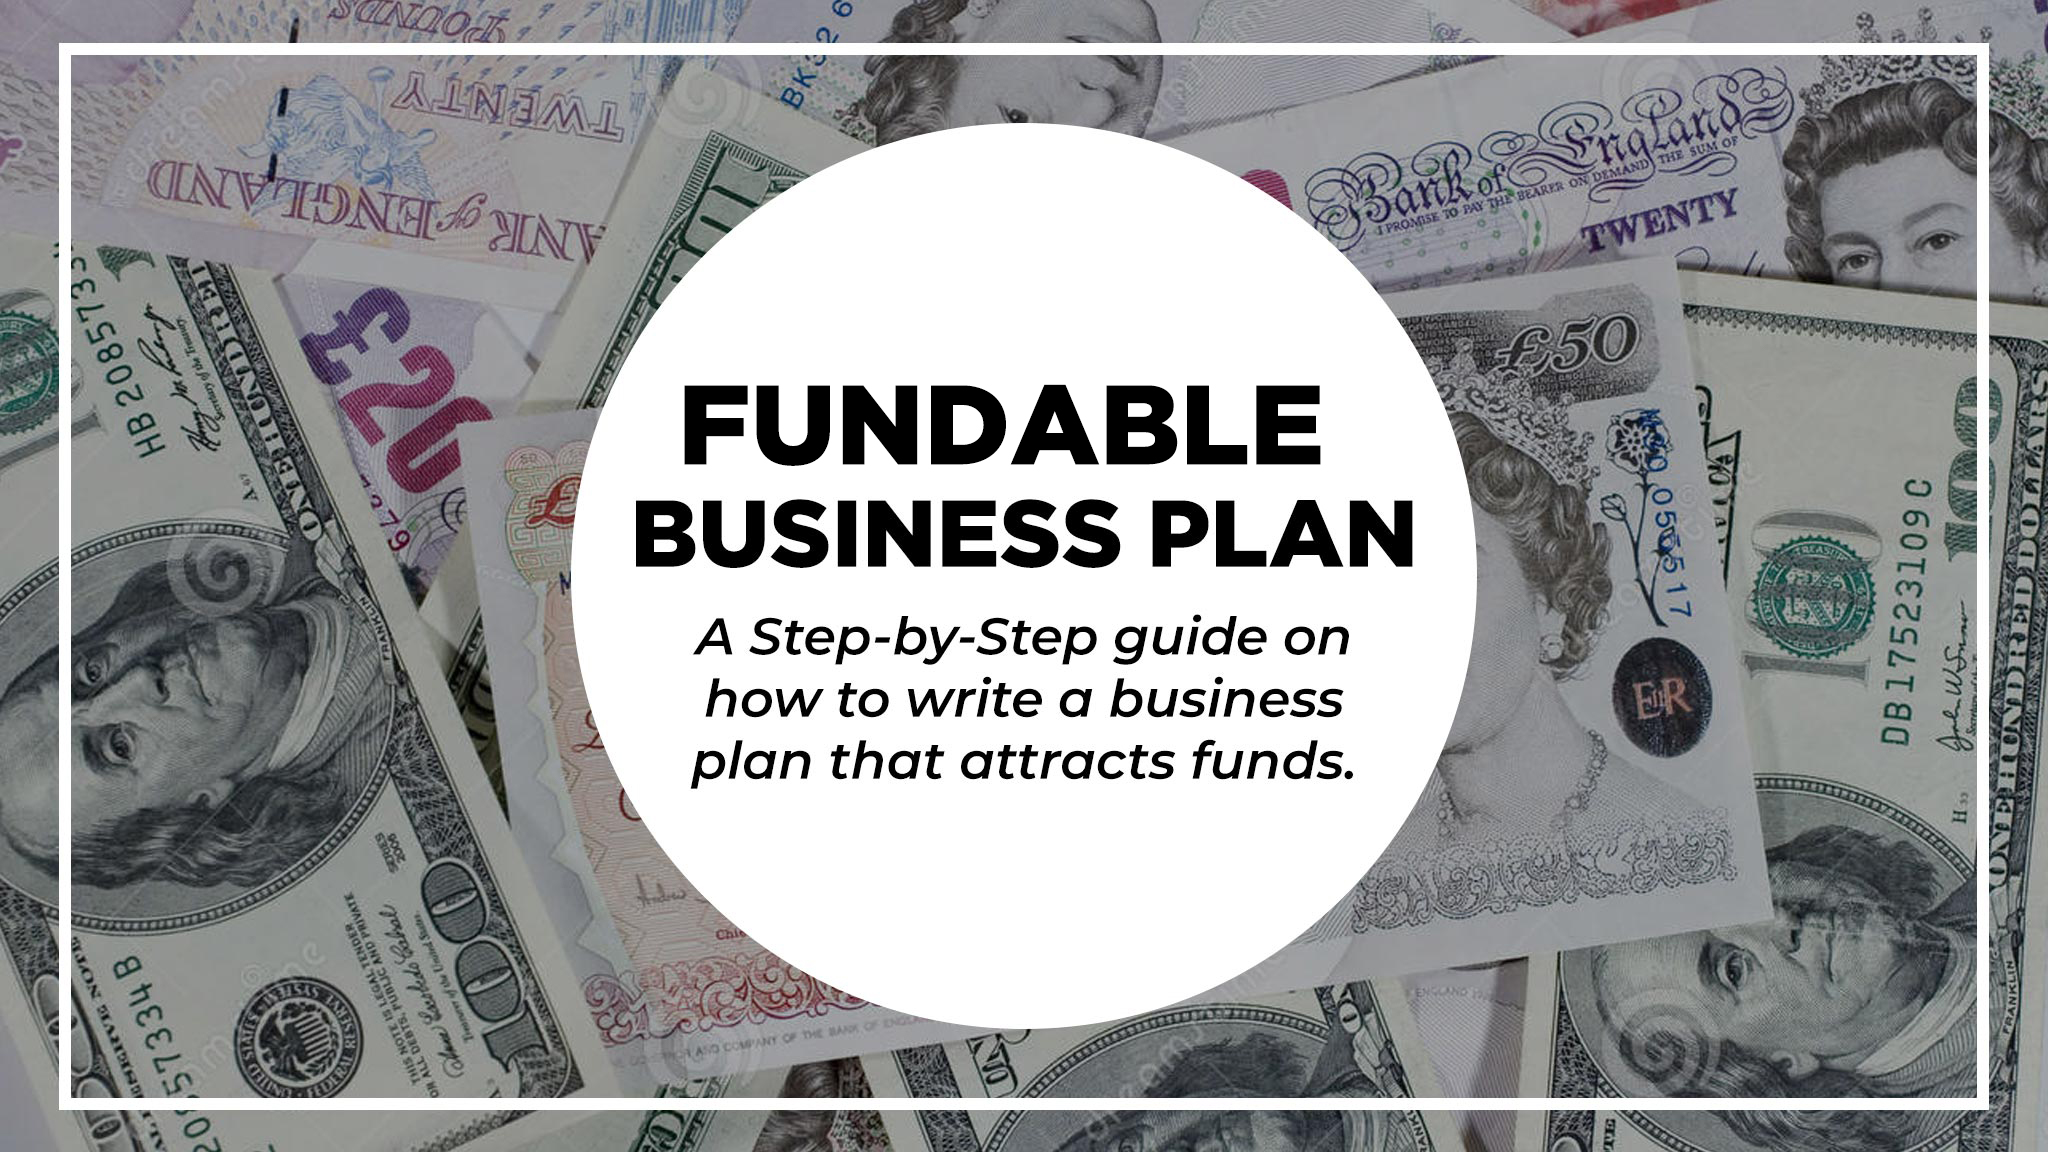 Fundable Business Plan